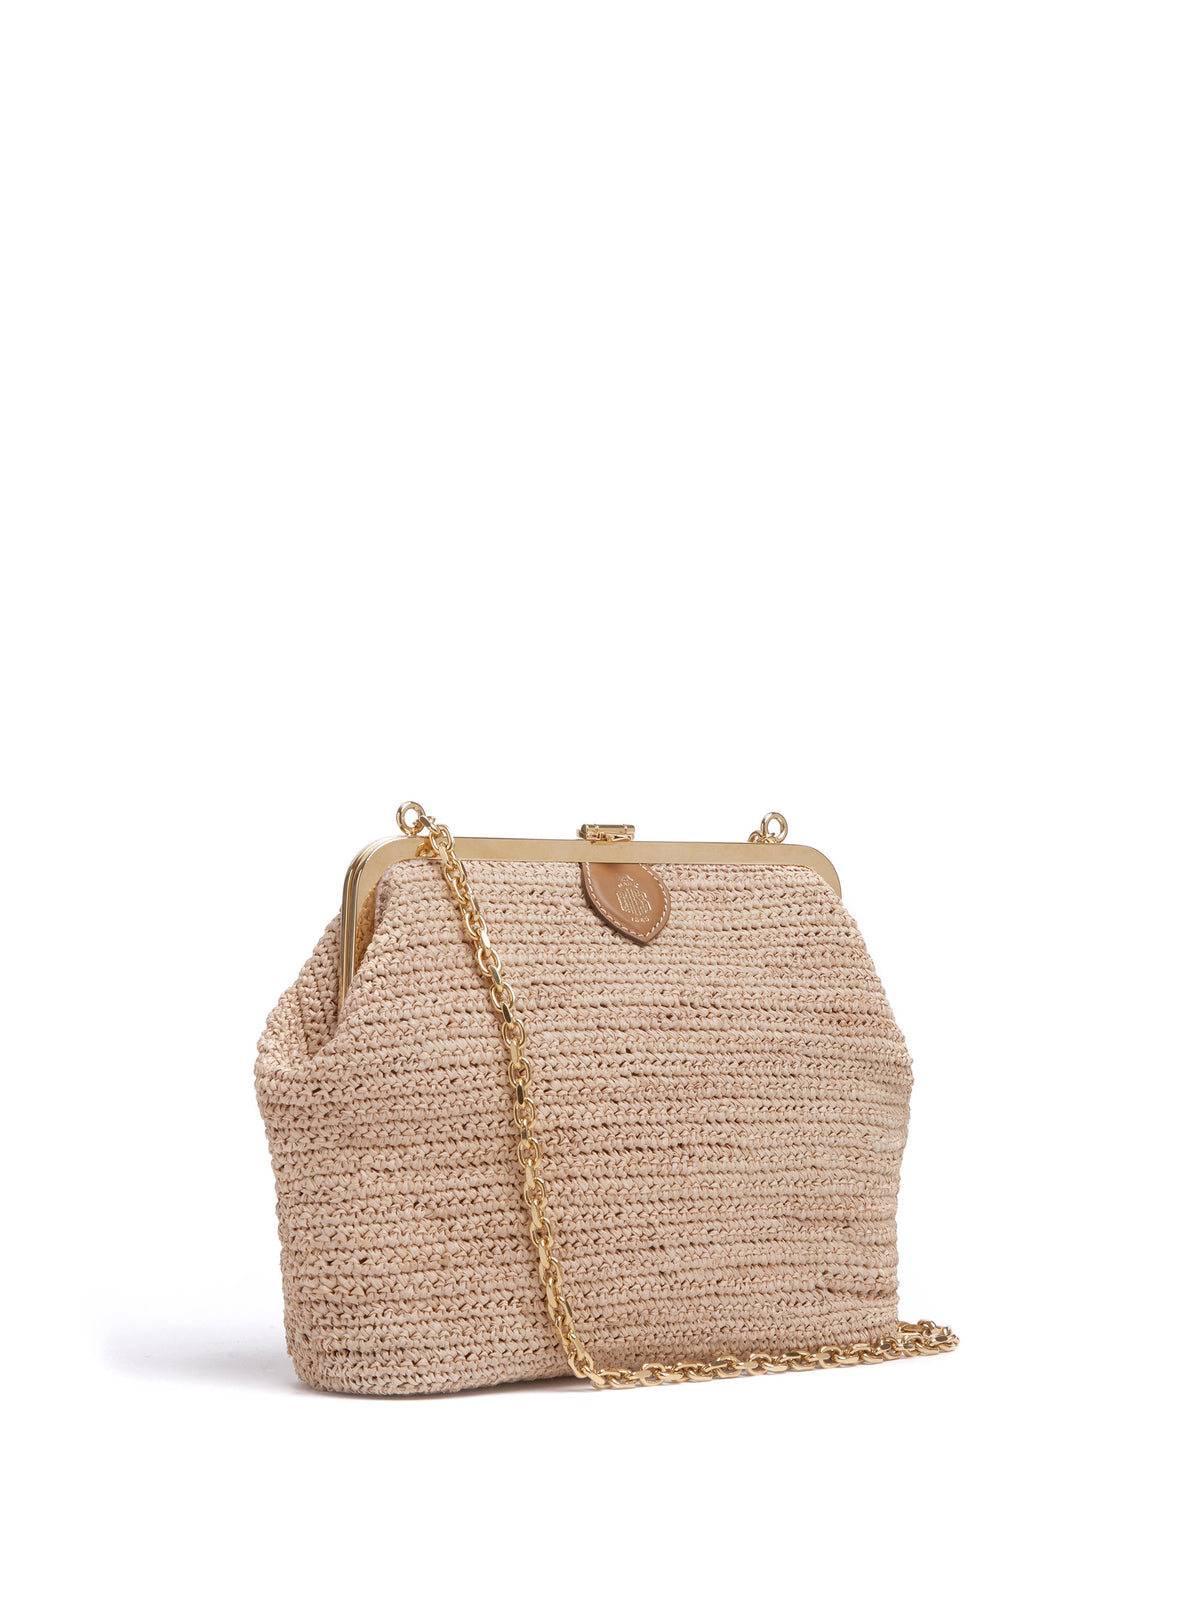 Mark Cross Susanna Raffia Pouch Bag Soft Calf Luggage / Natural Raffia Side